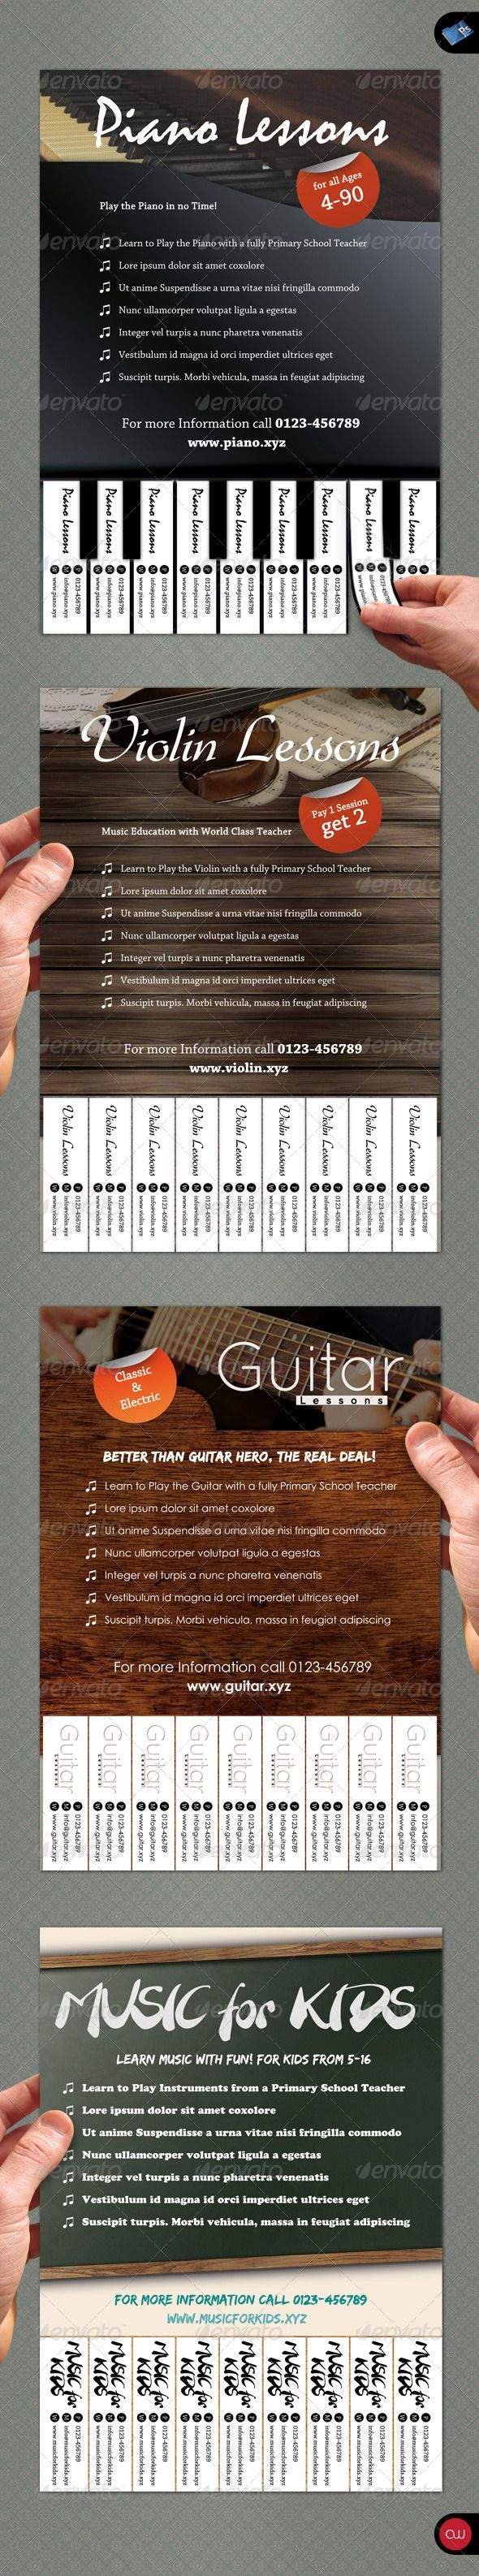 Tear-Off Flyer Music  PSD Template #5.8x8.3 #Corporate #Ad #Lessons #Tear Off • Only available here! → https://graphicriver.net/item/tearoff-flyer-vol1-music/1550145?ref=pxcr